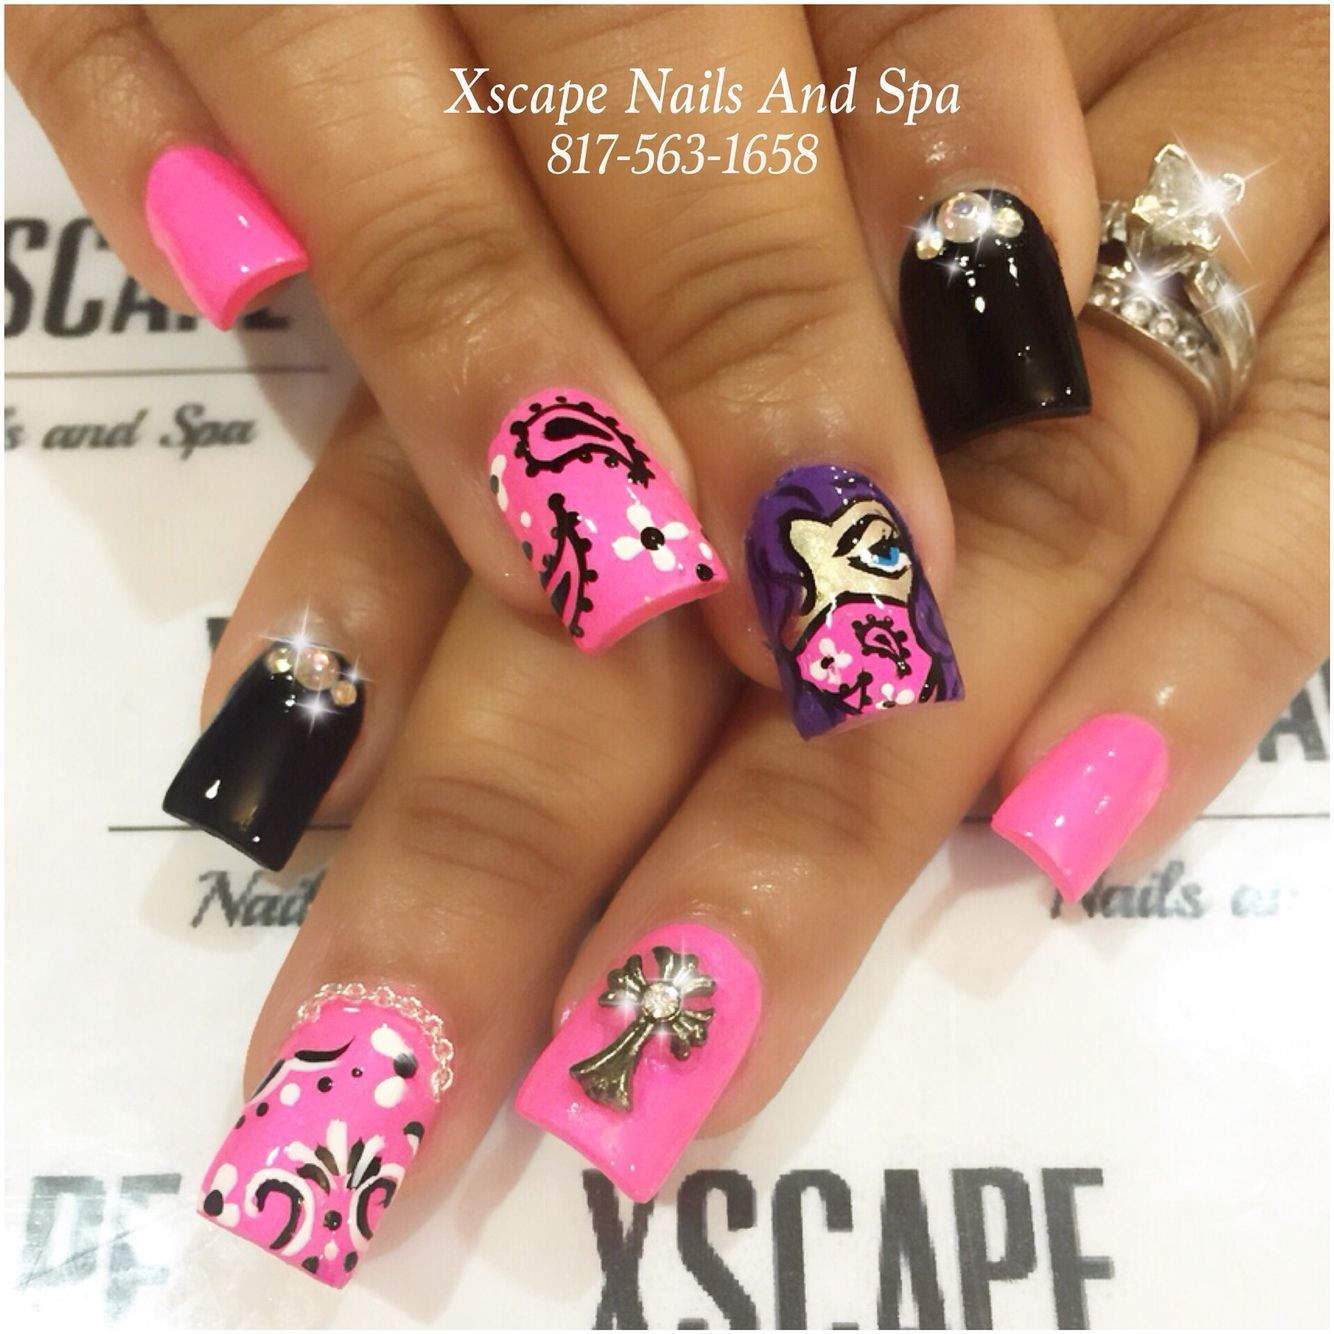 Gangster nails | Cute Nails Designs | Pinterest | Gangsters, Sexy ...